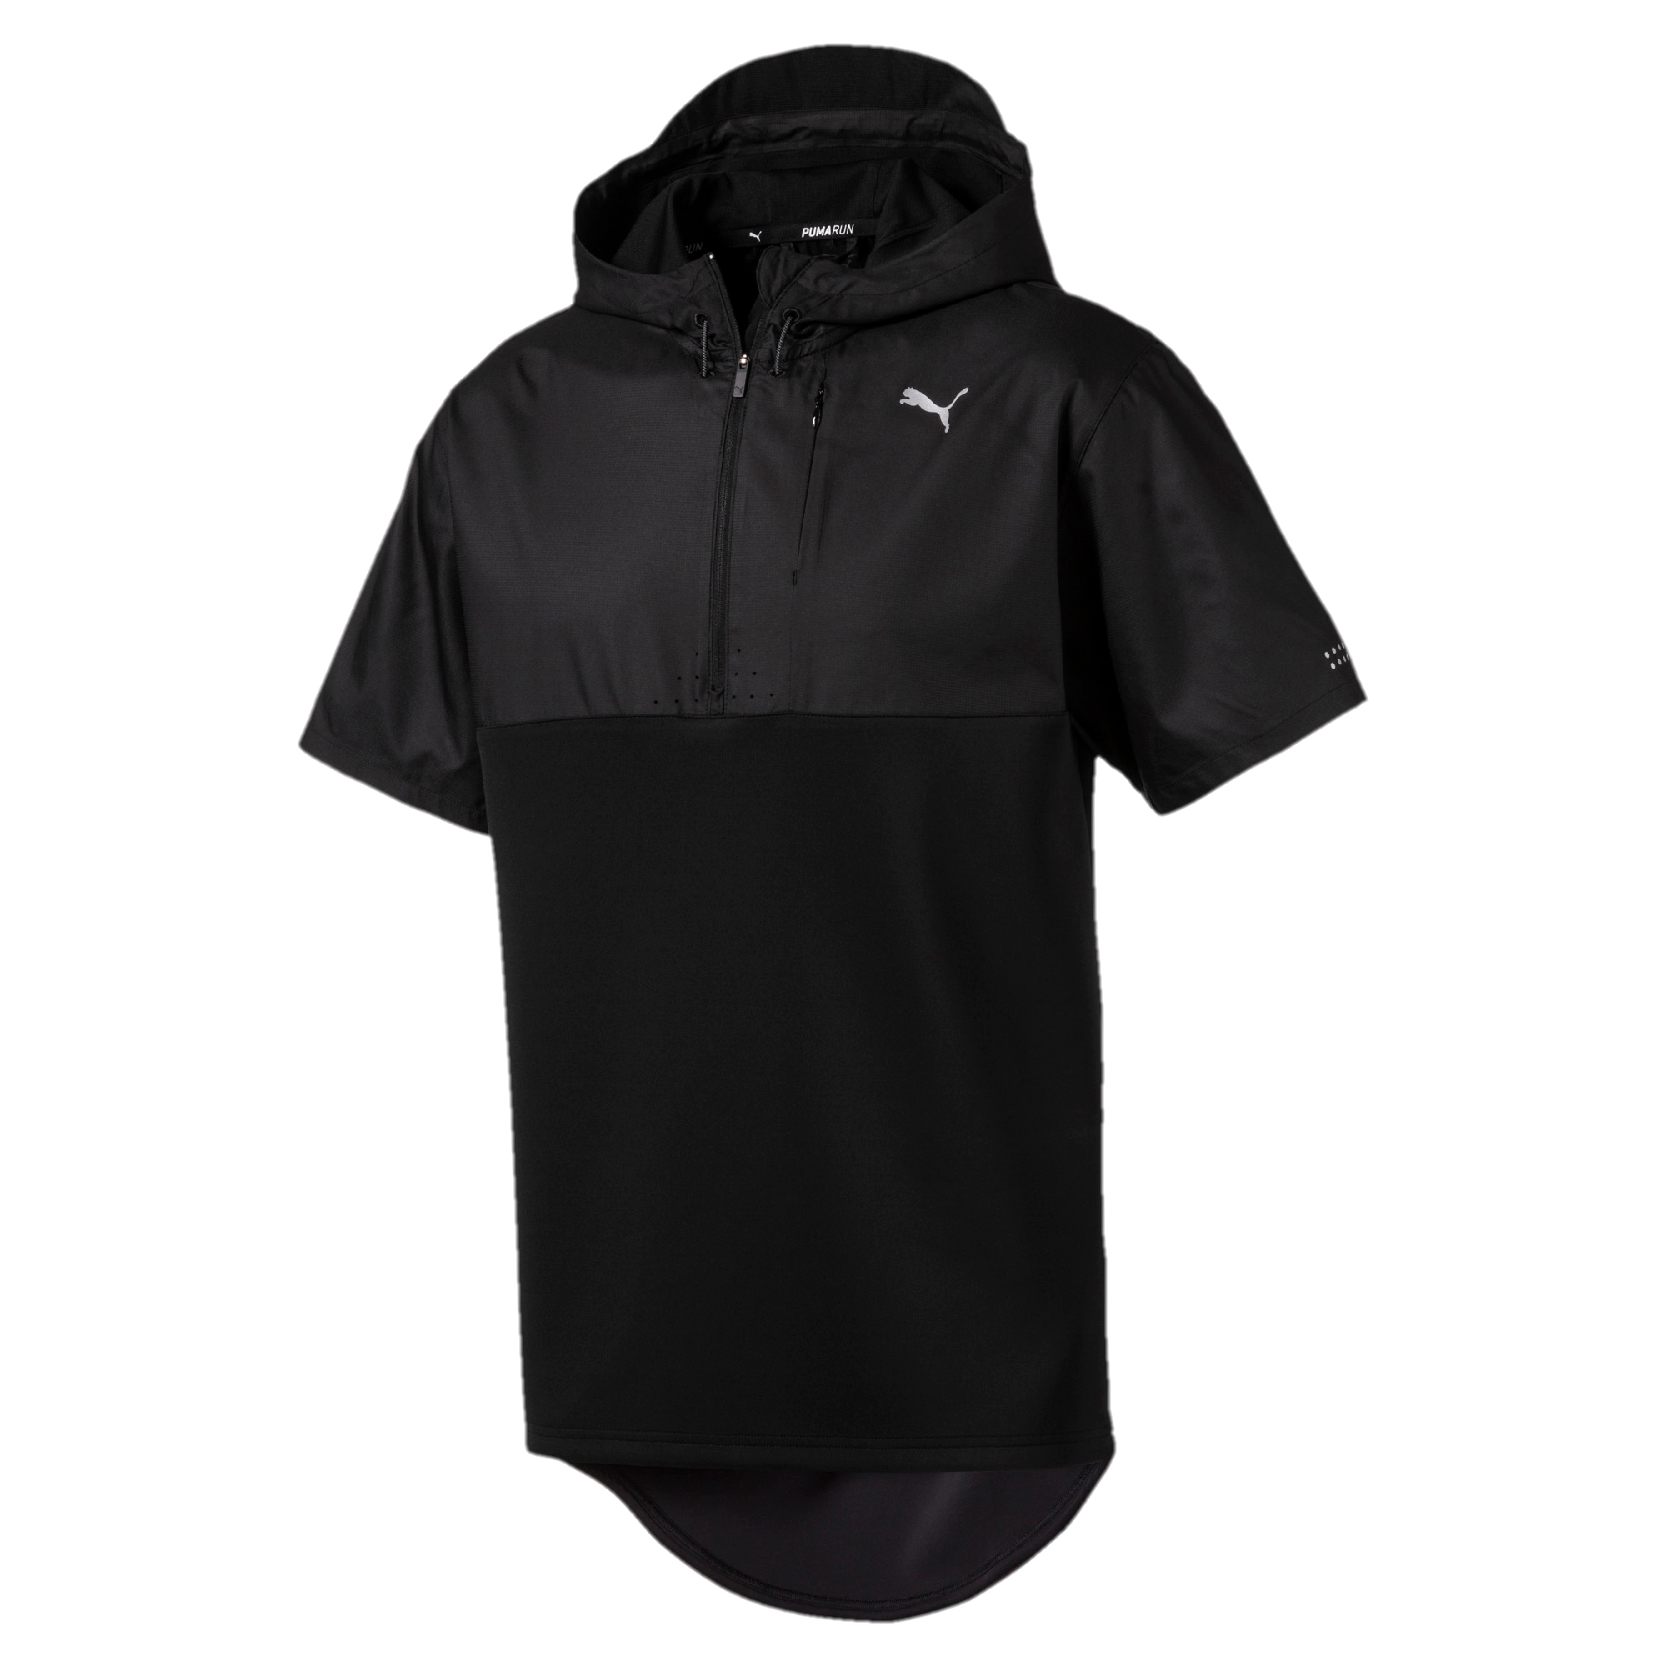 565d1af24cf Wiggle | Puma Energy Training Pullover Top | Hoodies